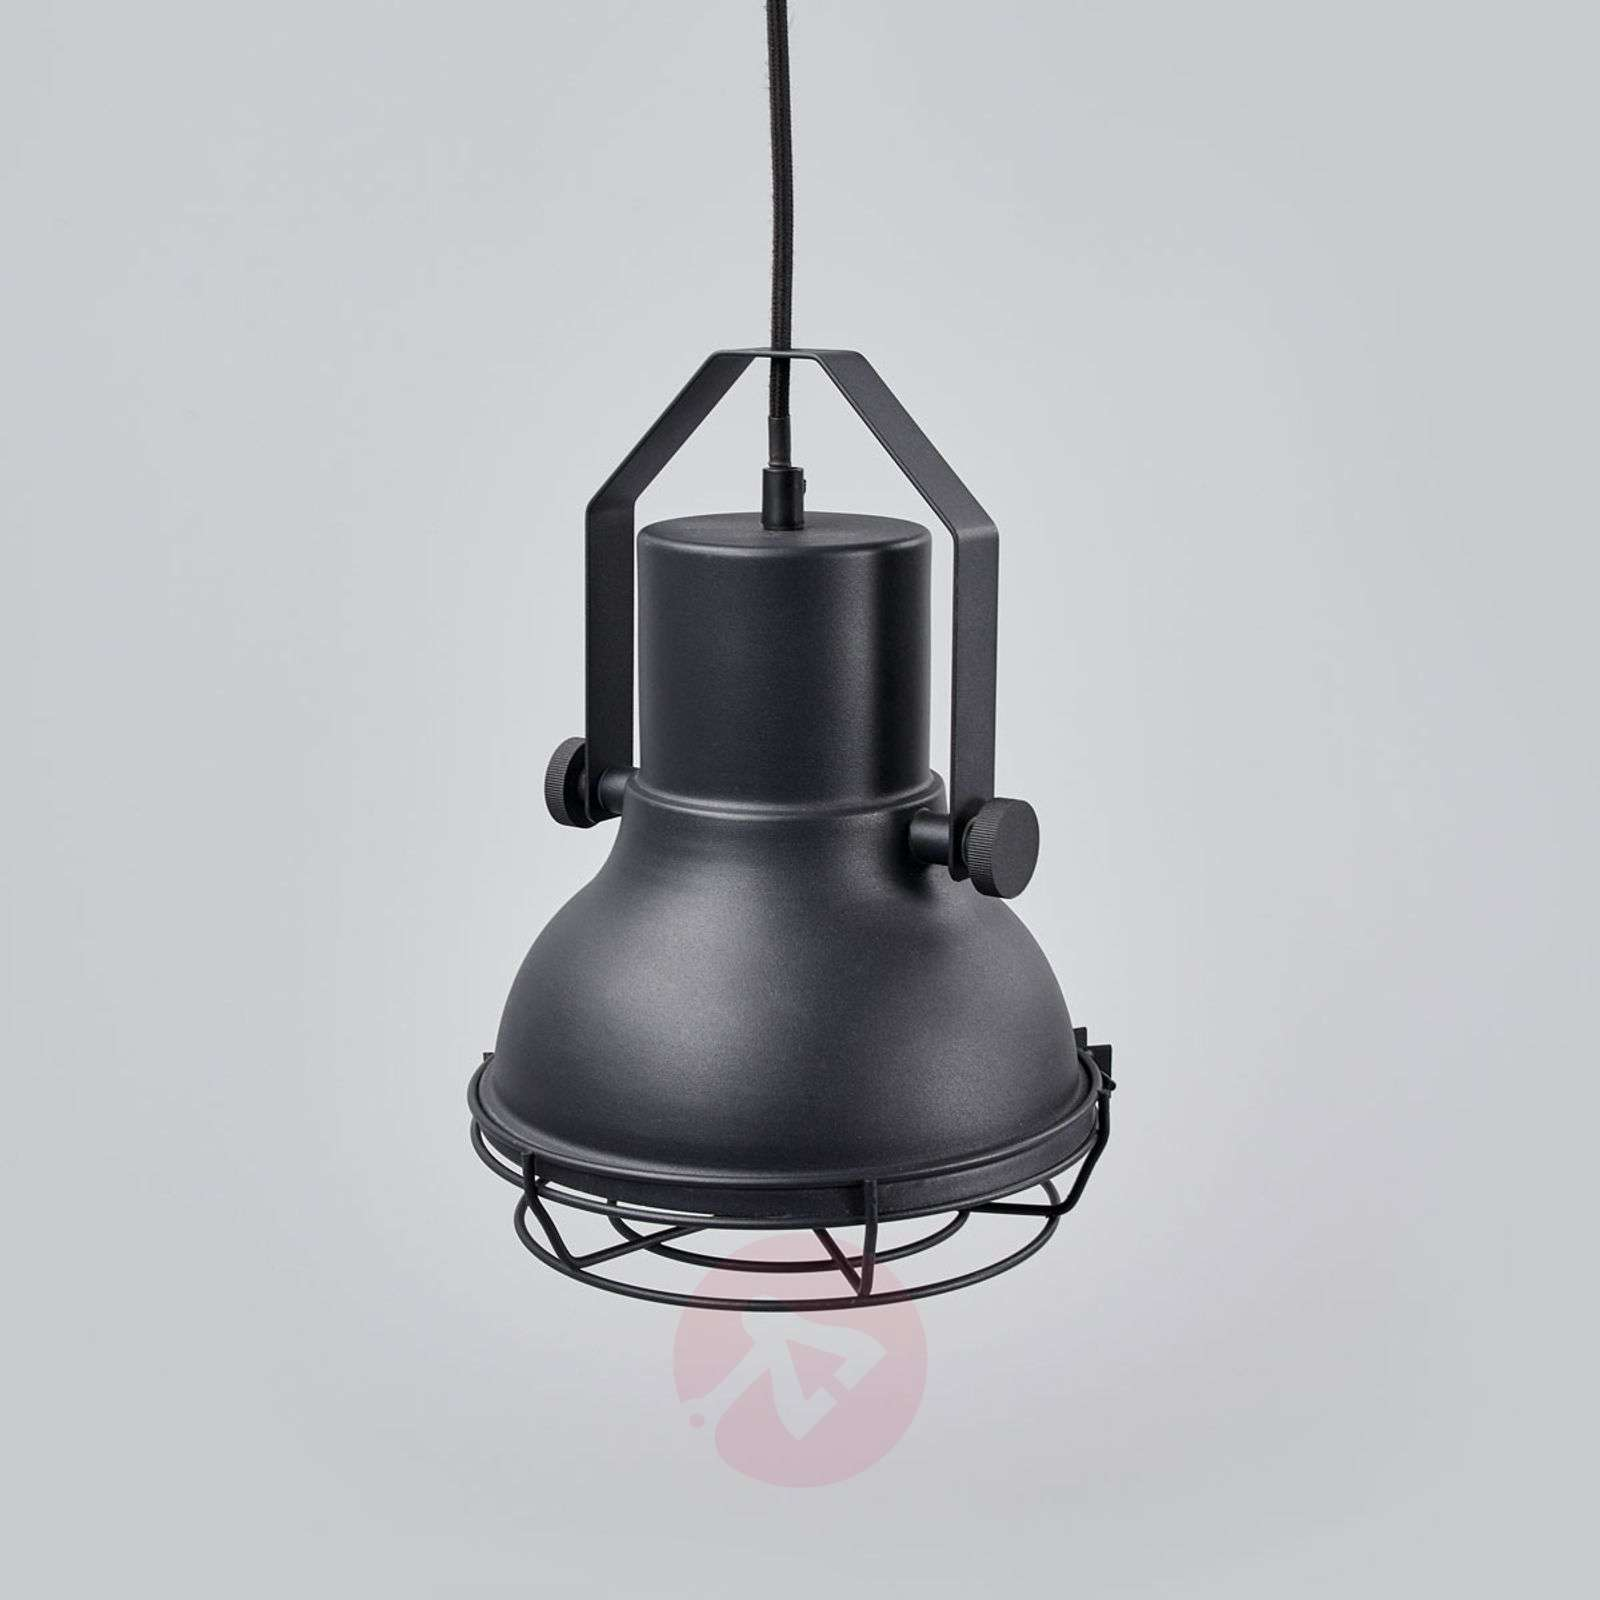 Suspension LED Conner dans le style industriel-1558052-02